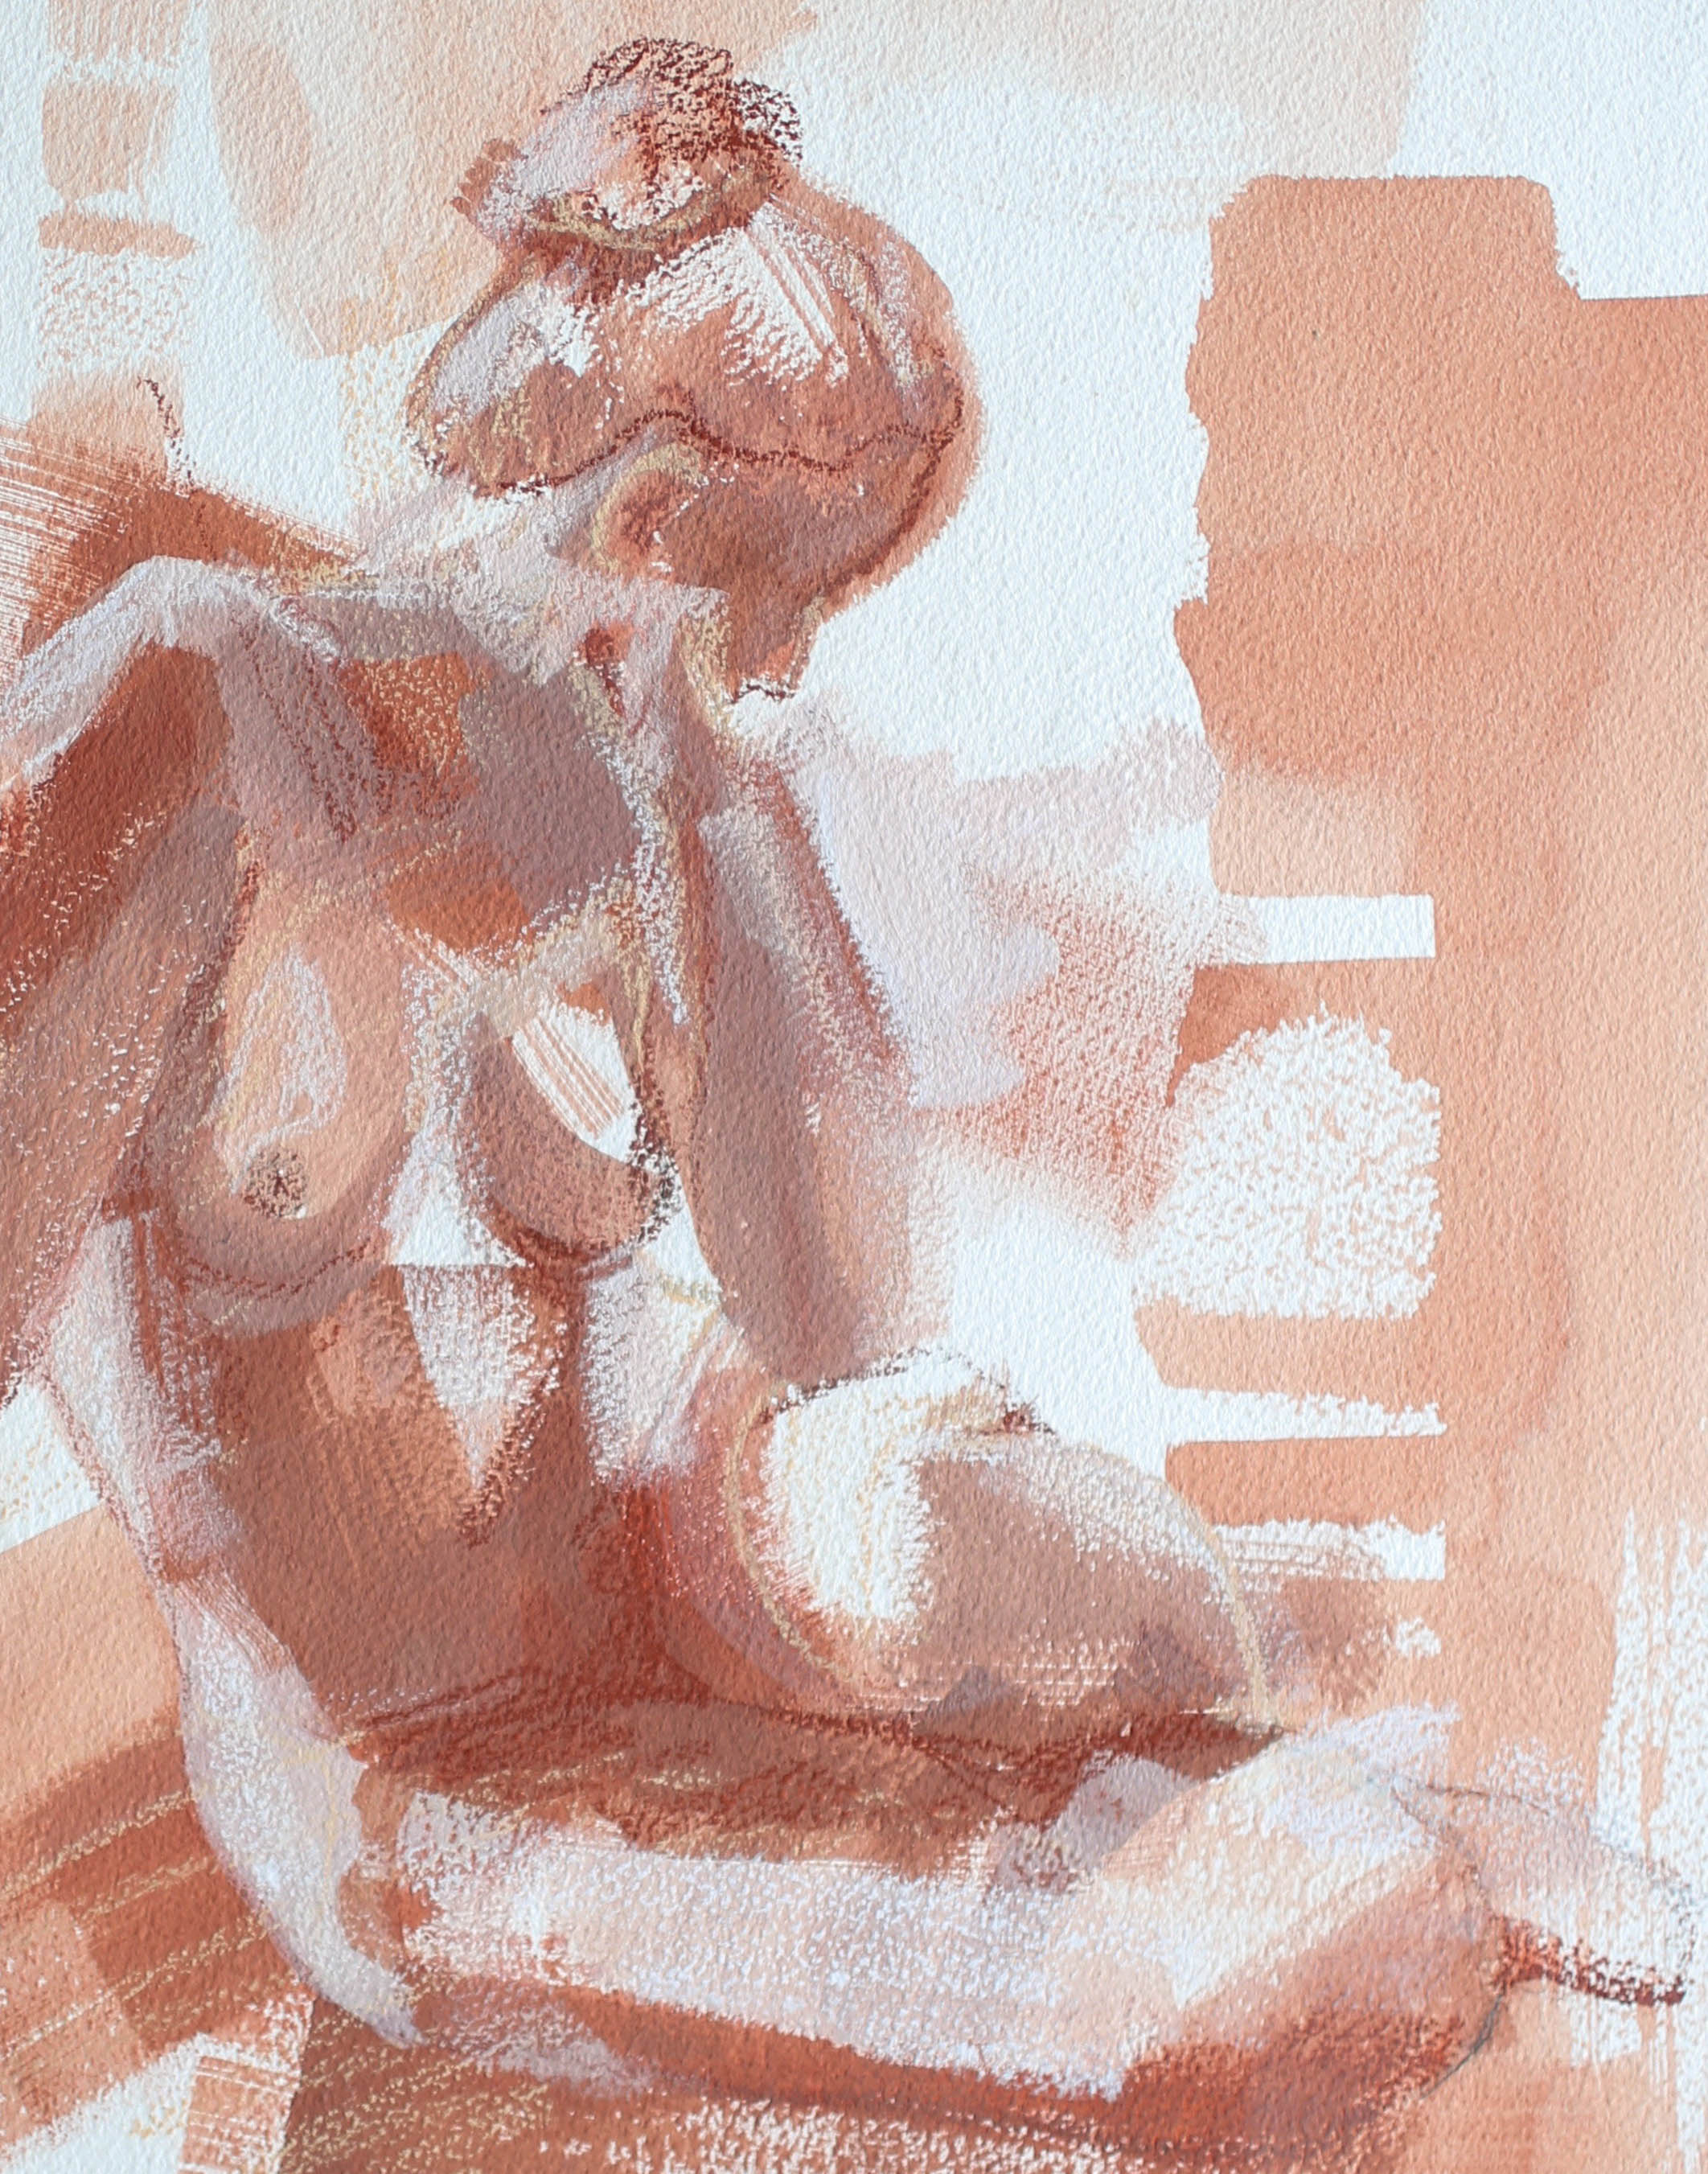 """What She's Made Of"" 11x14 Katherine Corden Art  #abstractfigure #figurepainting"